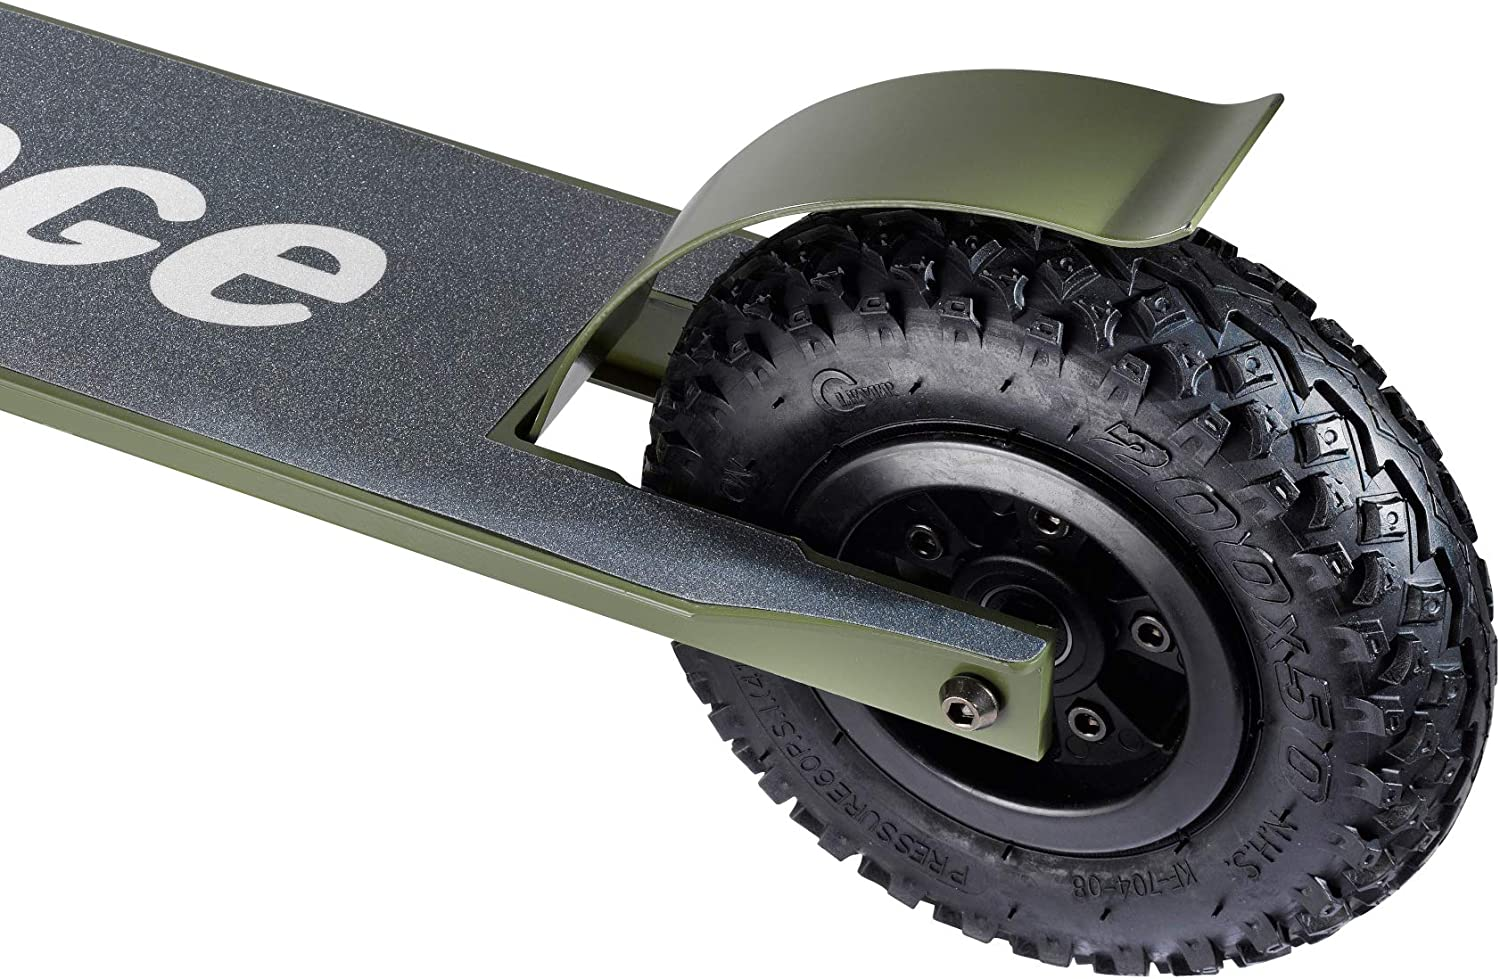 Sterzo Scooter all Terrain Trick Scooter w Pneumatici Pneumatici Pneumatici 200mm forche Stile BMX